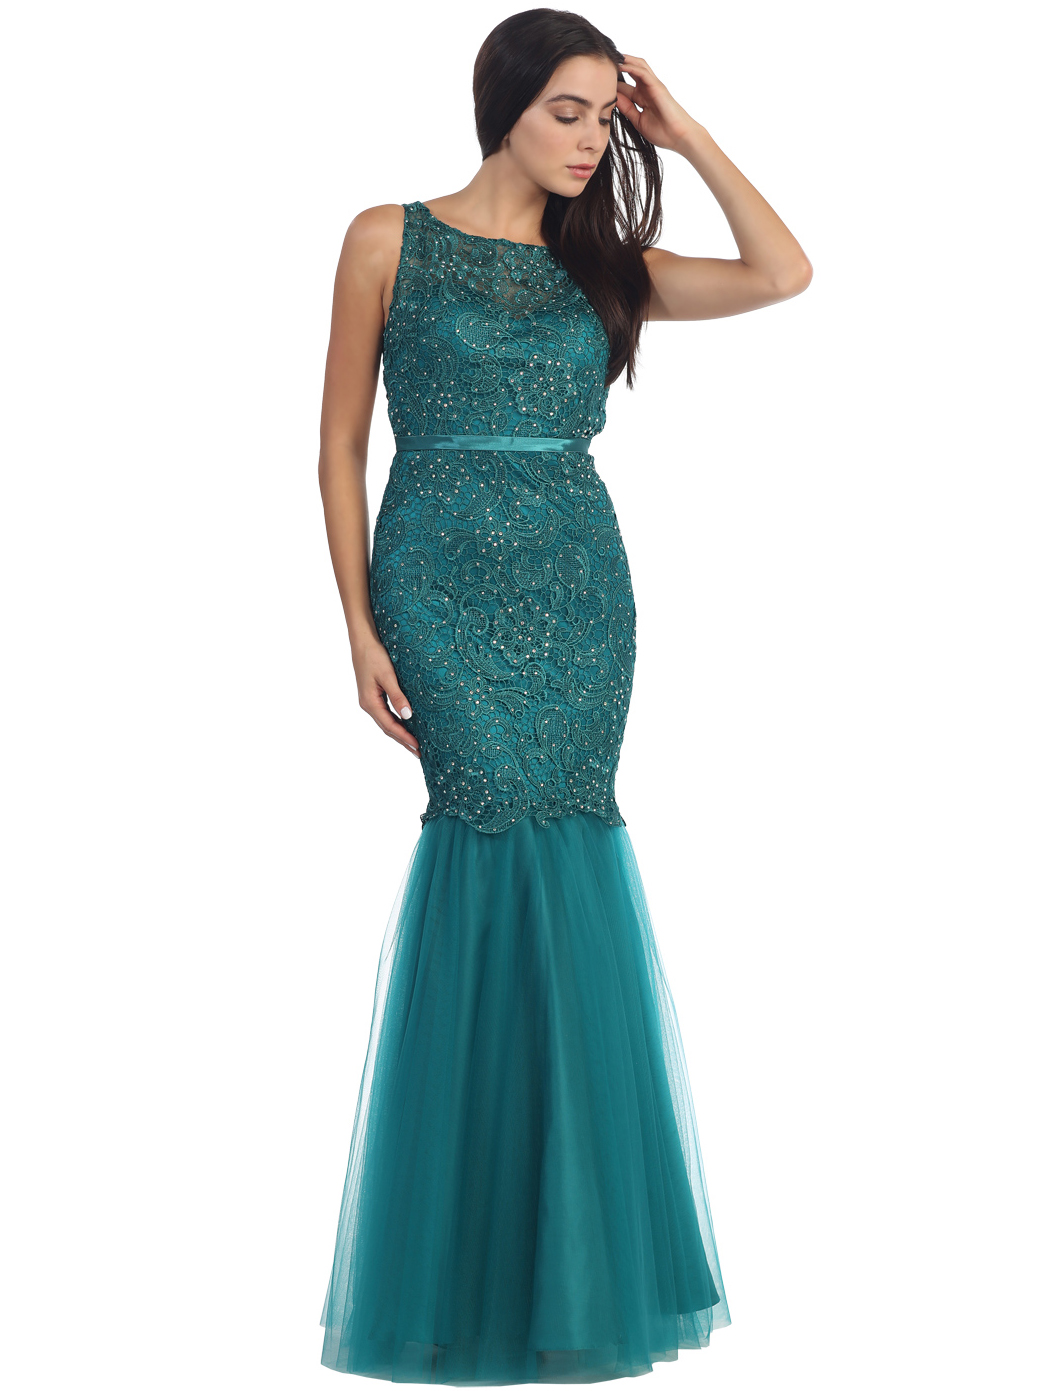 Lace Overlay Sleeveless Prom Dress | Sung Boutique L.A.